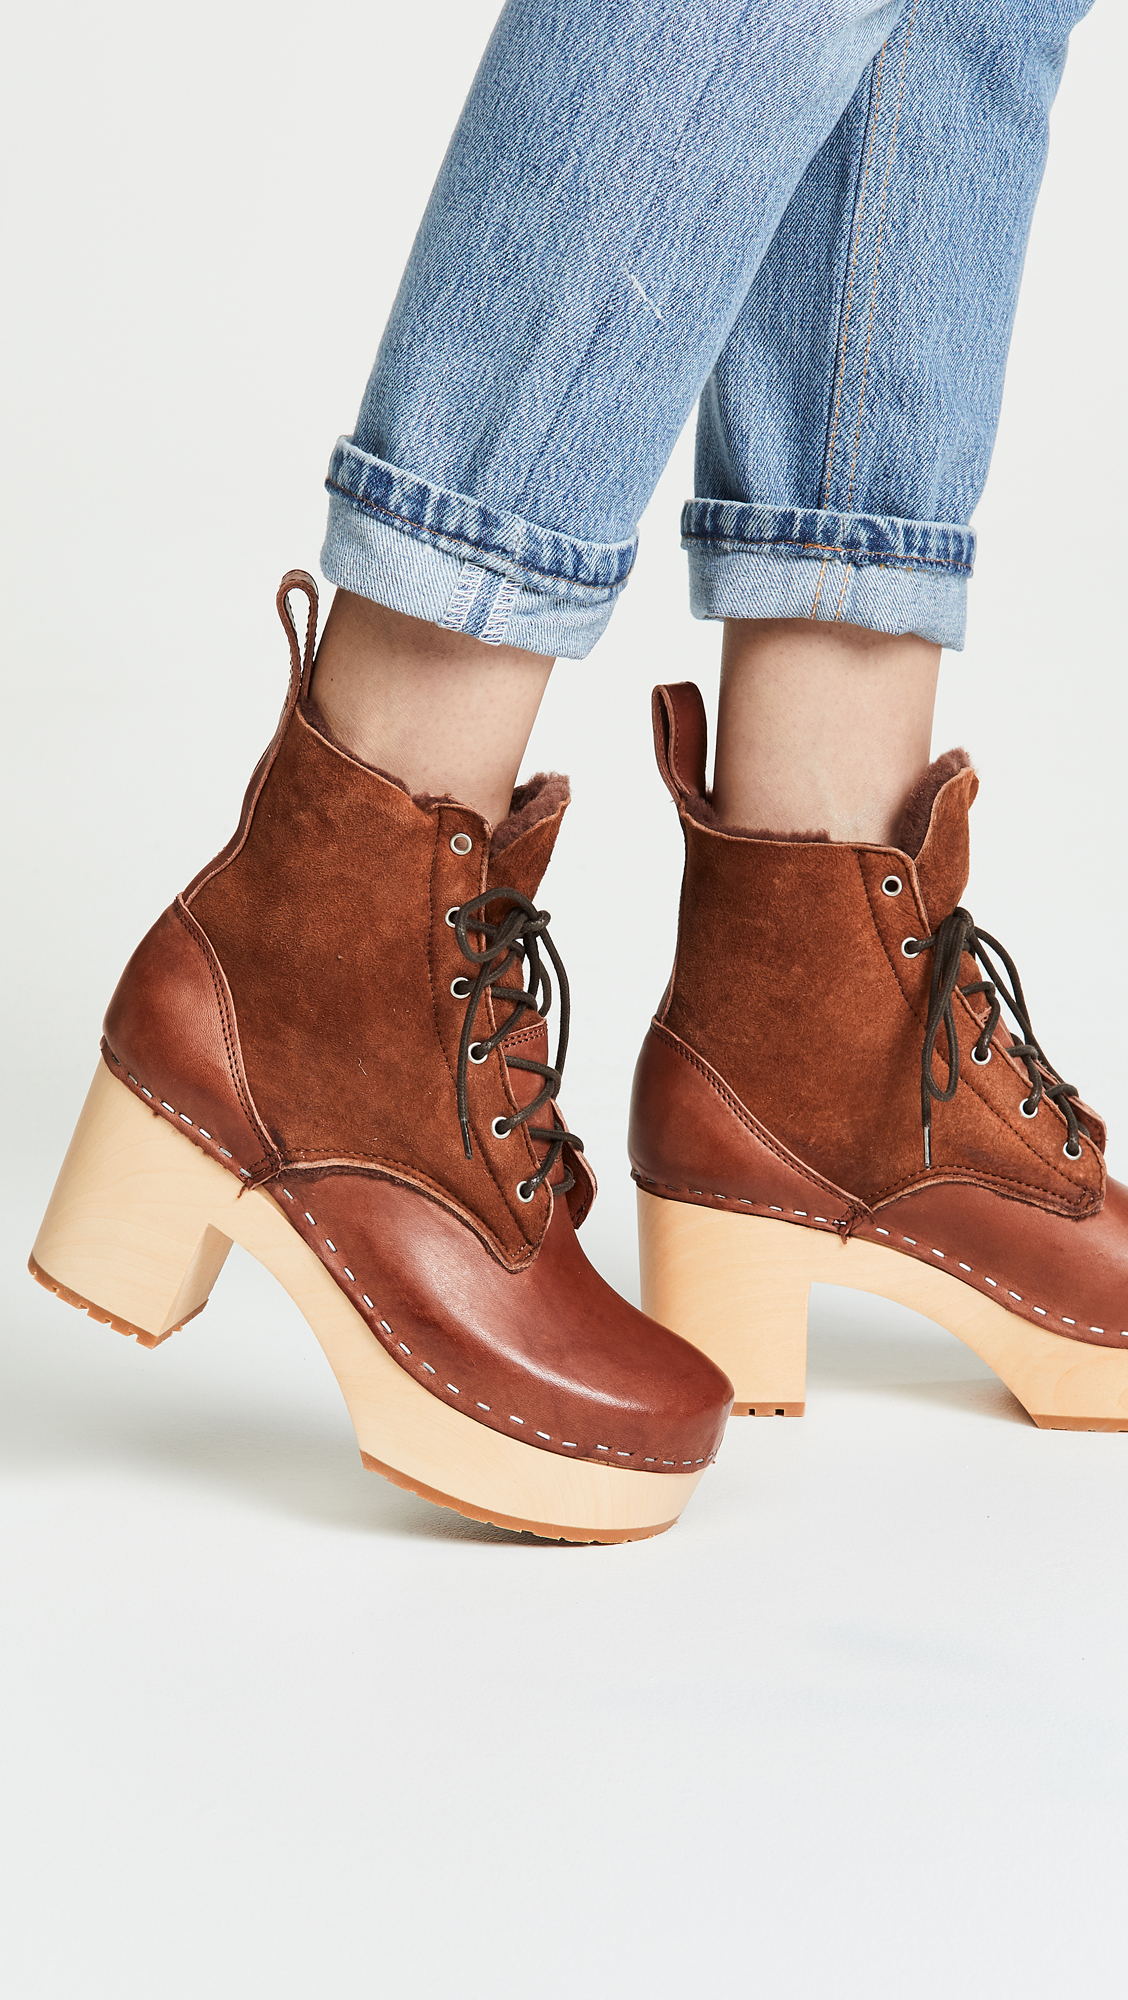 e0f409b15d1 Swedish Hasbeens Hippie Lace Up Boots